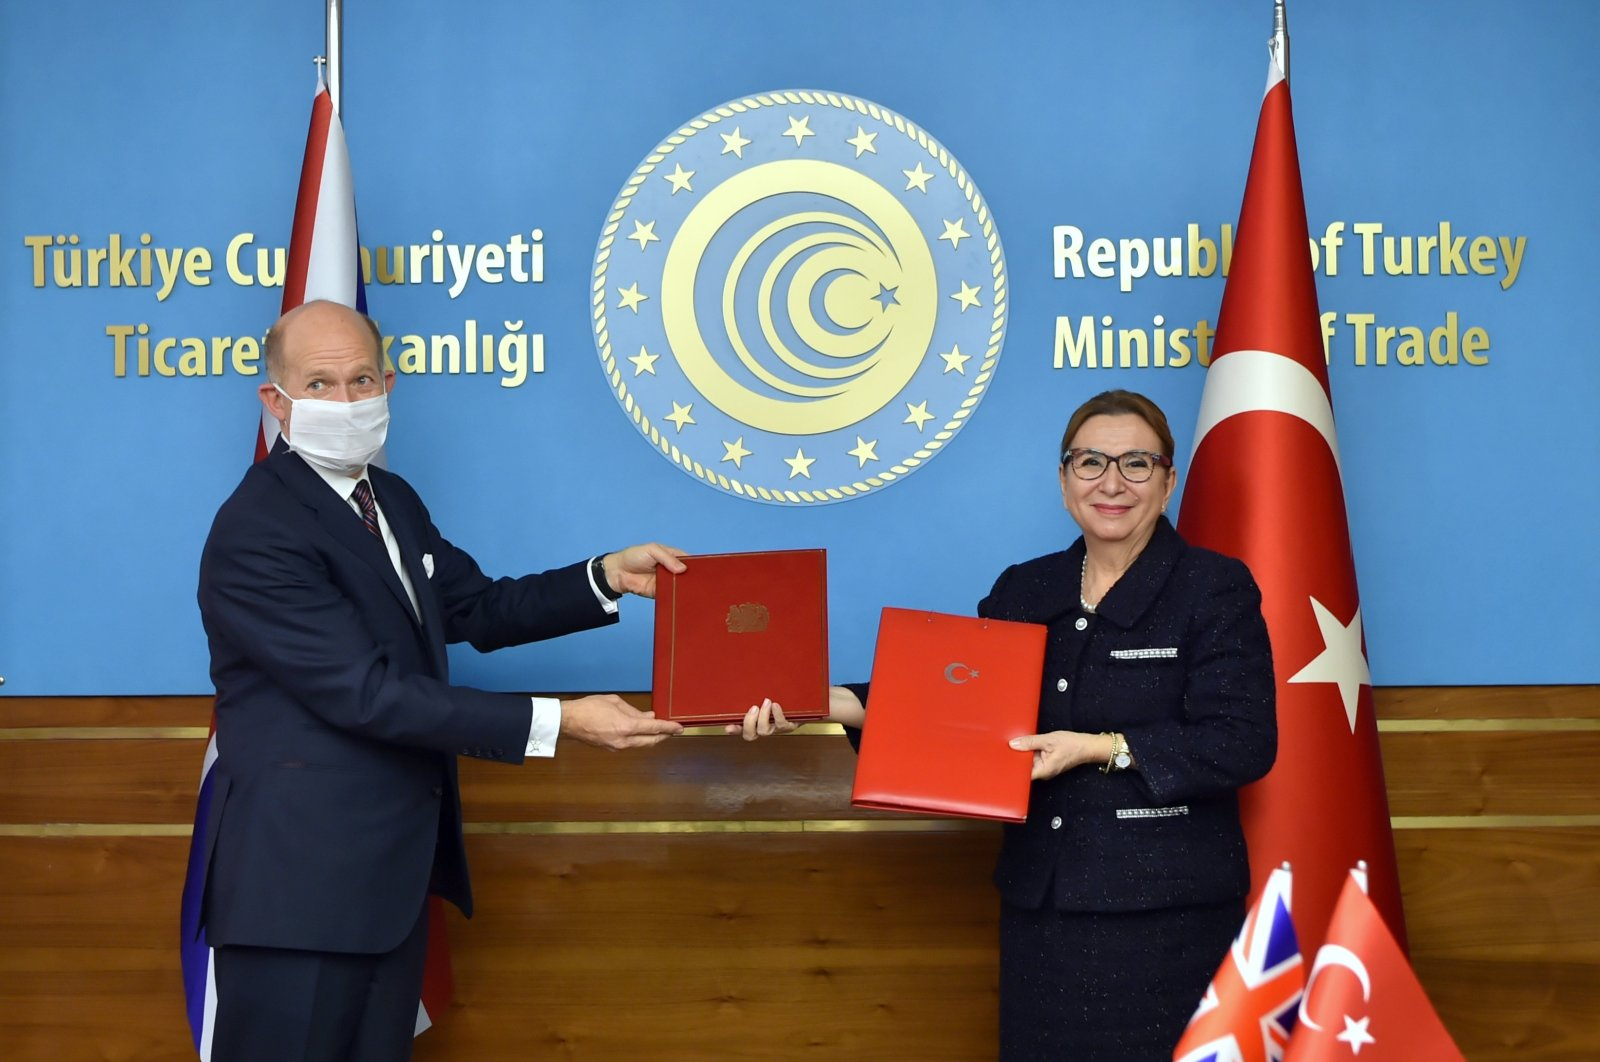 Post-Brexit Turkey-UK ties show signs of new strategic partnership